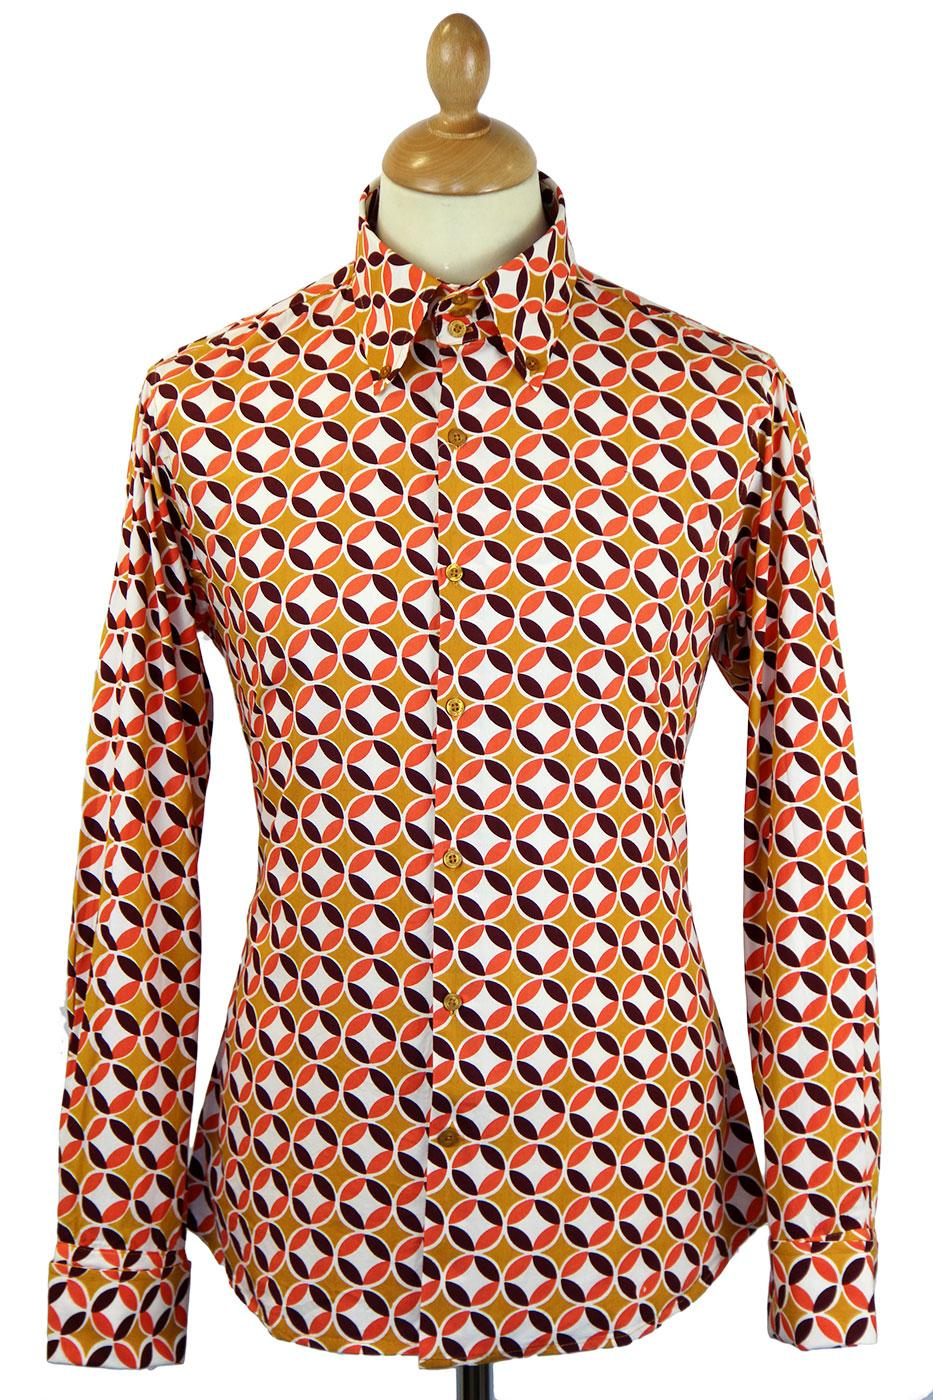 Sunset MADCAP ENGLAND 60s High Collar Mod Shirt M